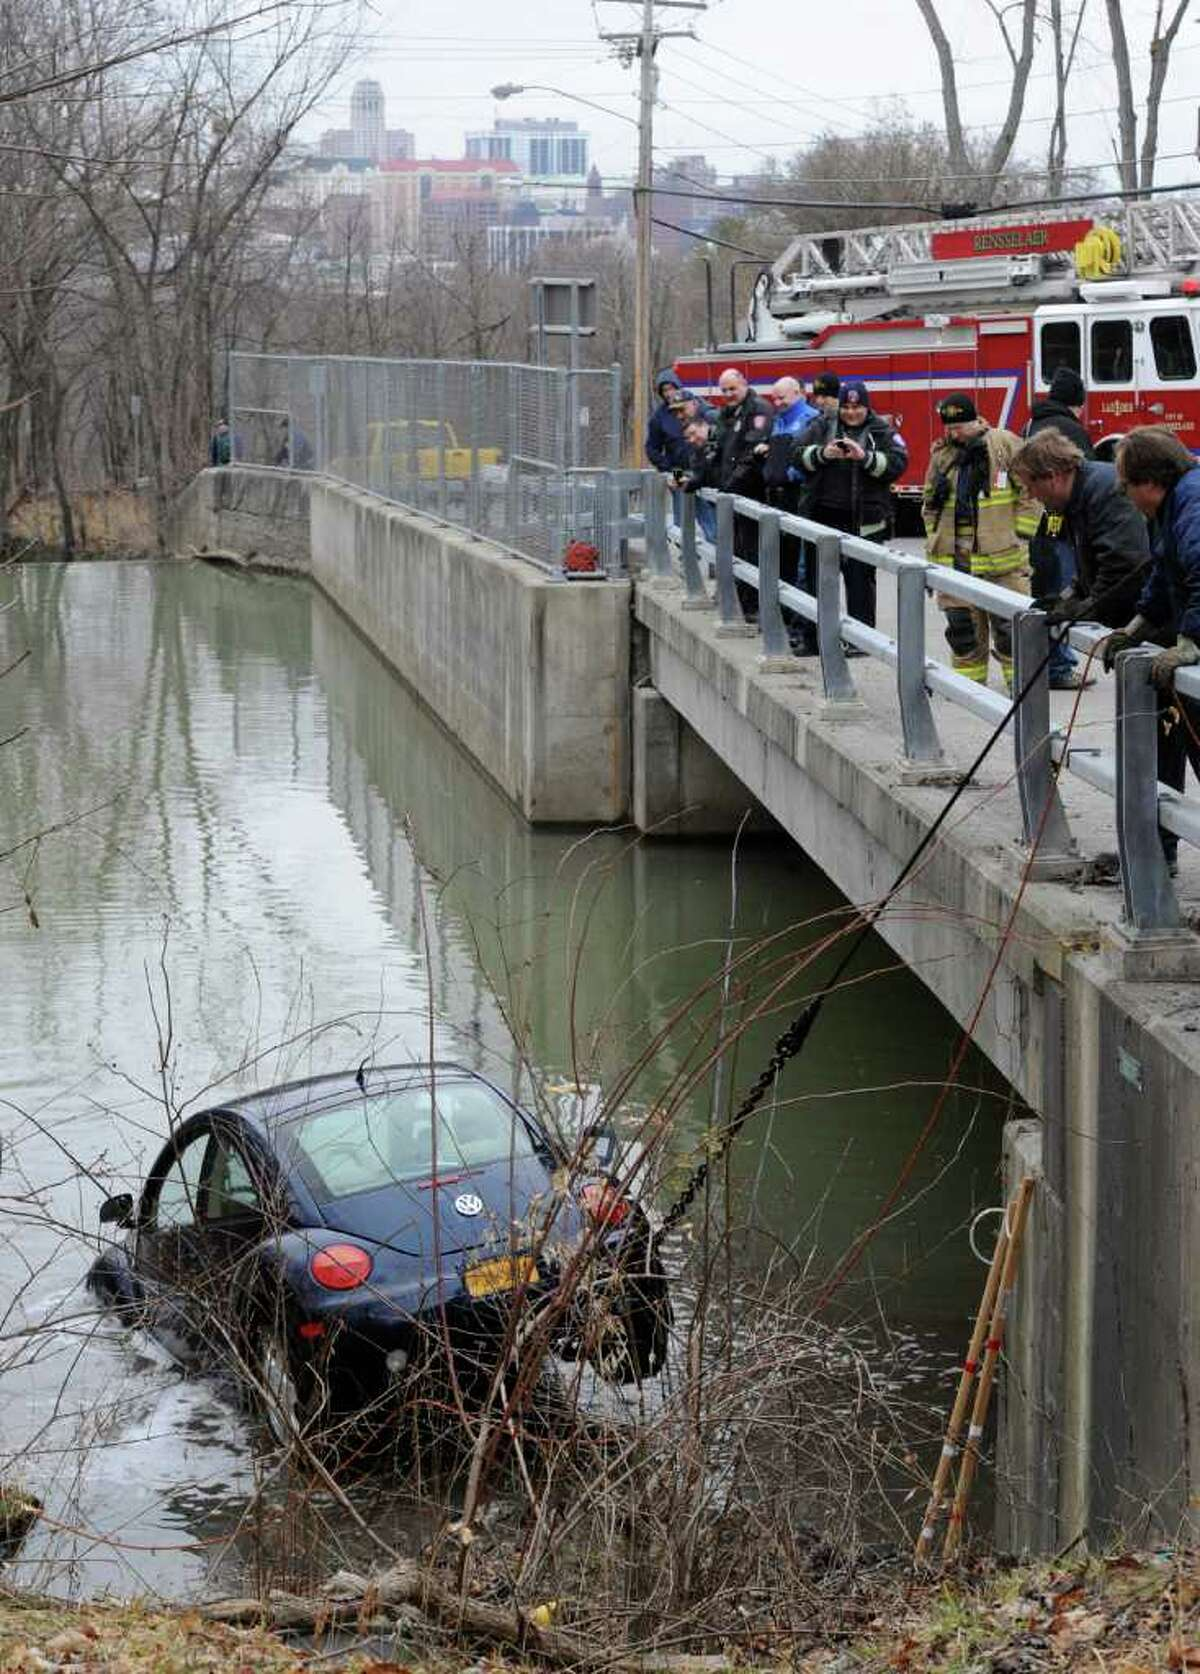 Members of the Clinton Heights Fire Department Rescue Squad work to remove a Volkswagen bug from the depths of the Red Mill Creek in Rensselaer, N.Y. Feb. 2, 2012. Geist towing was used to winch the vehicle from the creek. (Skip Dickstein / Times Union)